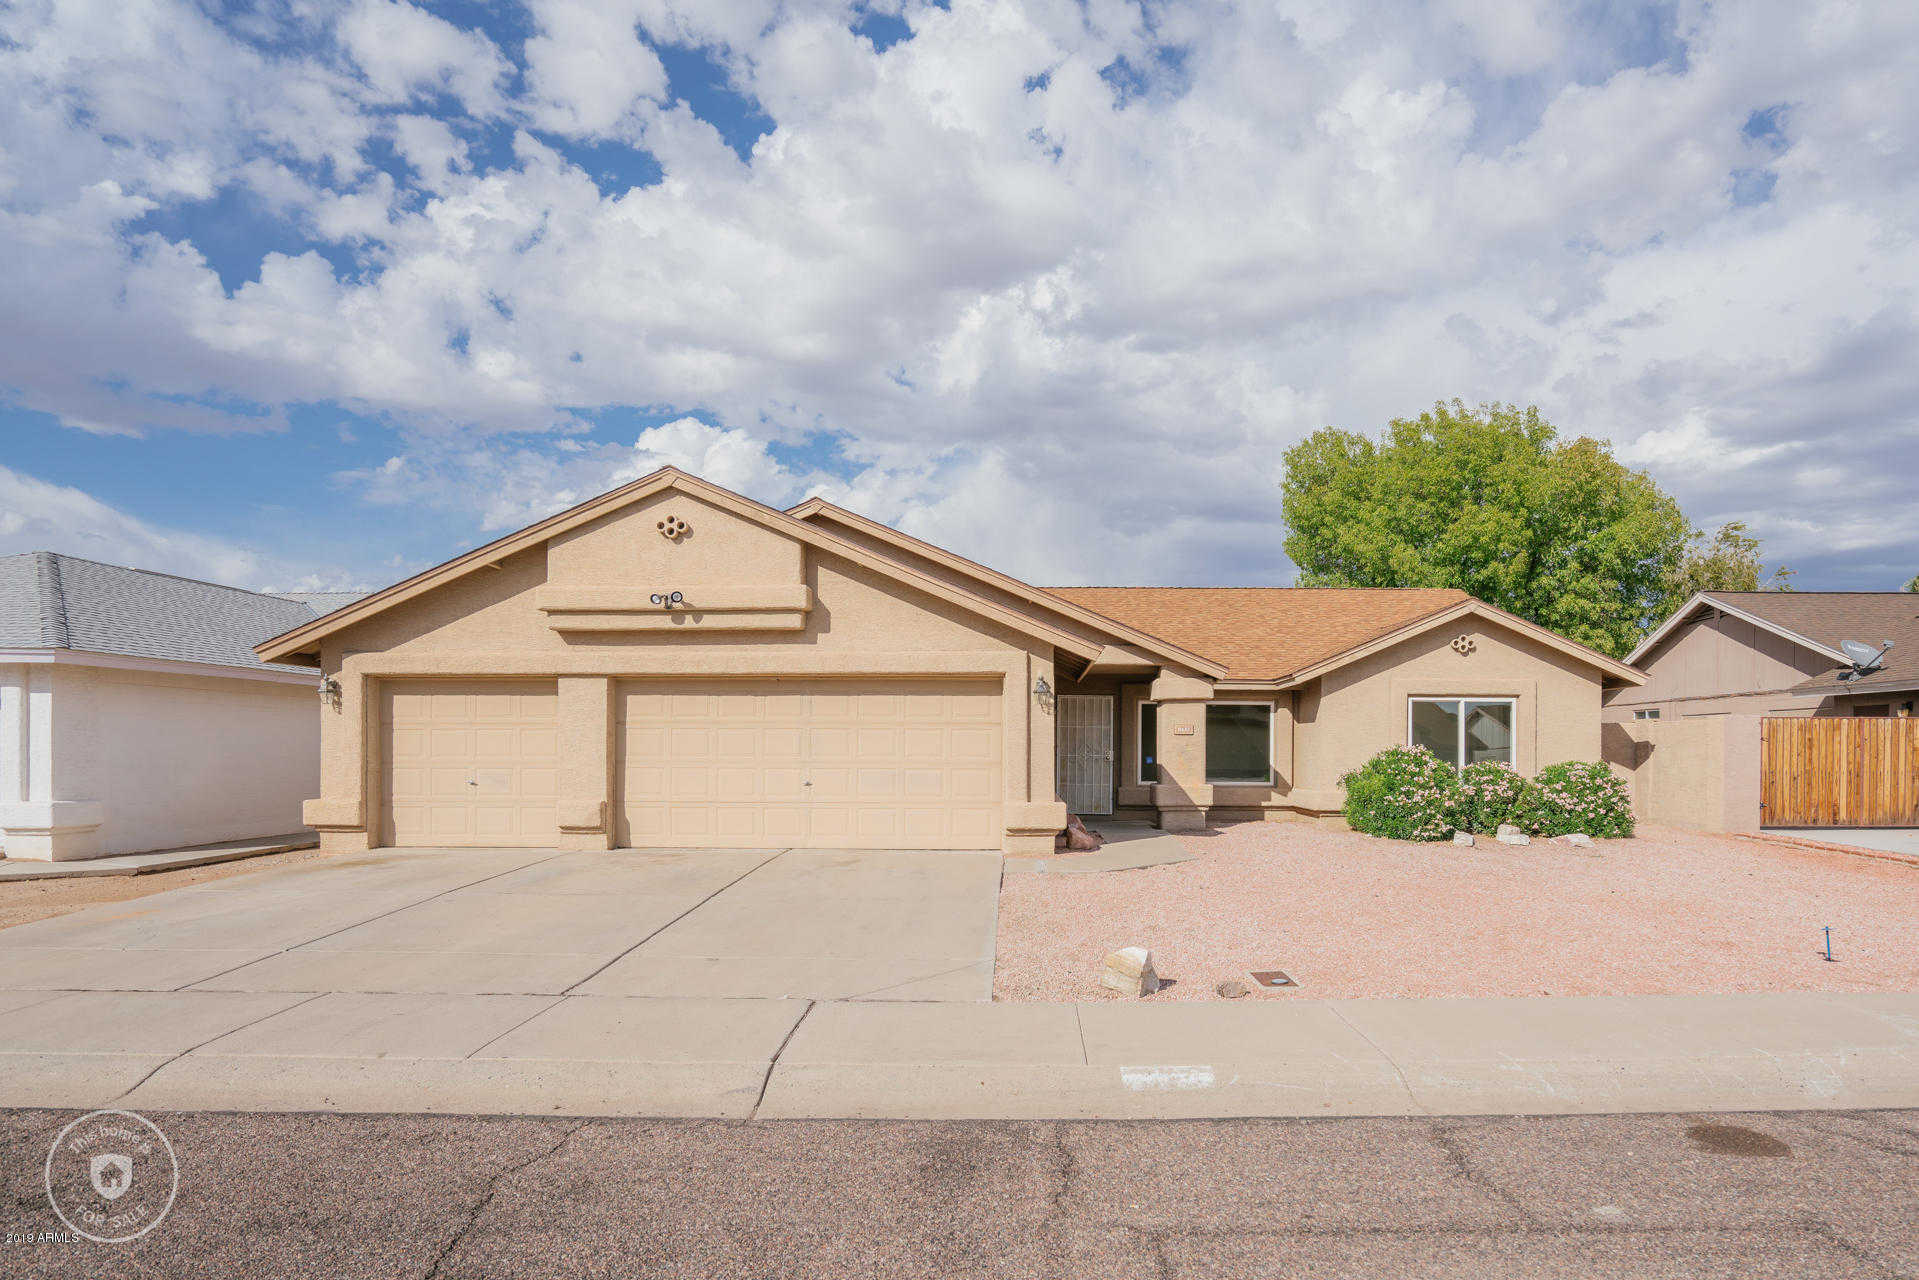 $300,000 - 4Br/2Ba - Home for Sale in Pivotal Peoria Center Lot 1-297 Tr A-d, Peoria